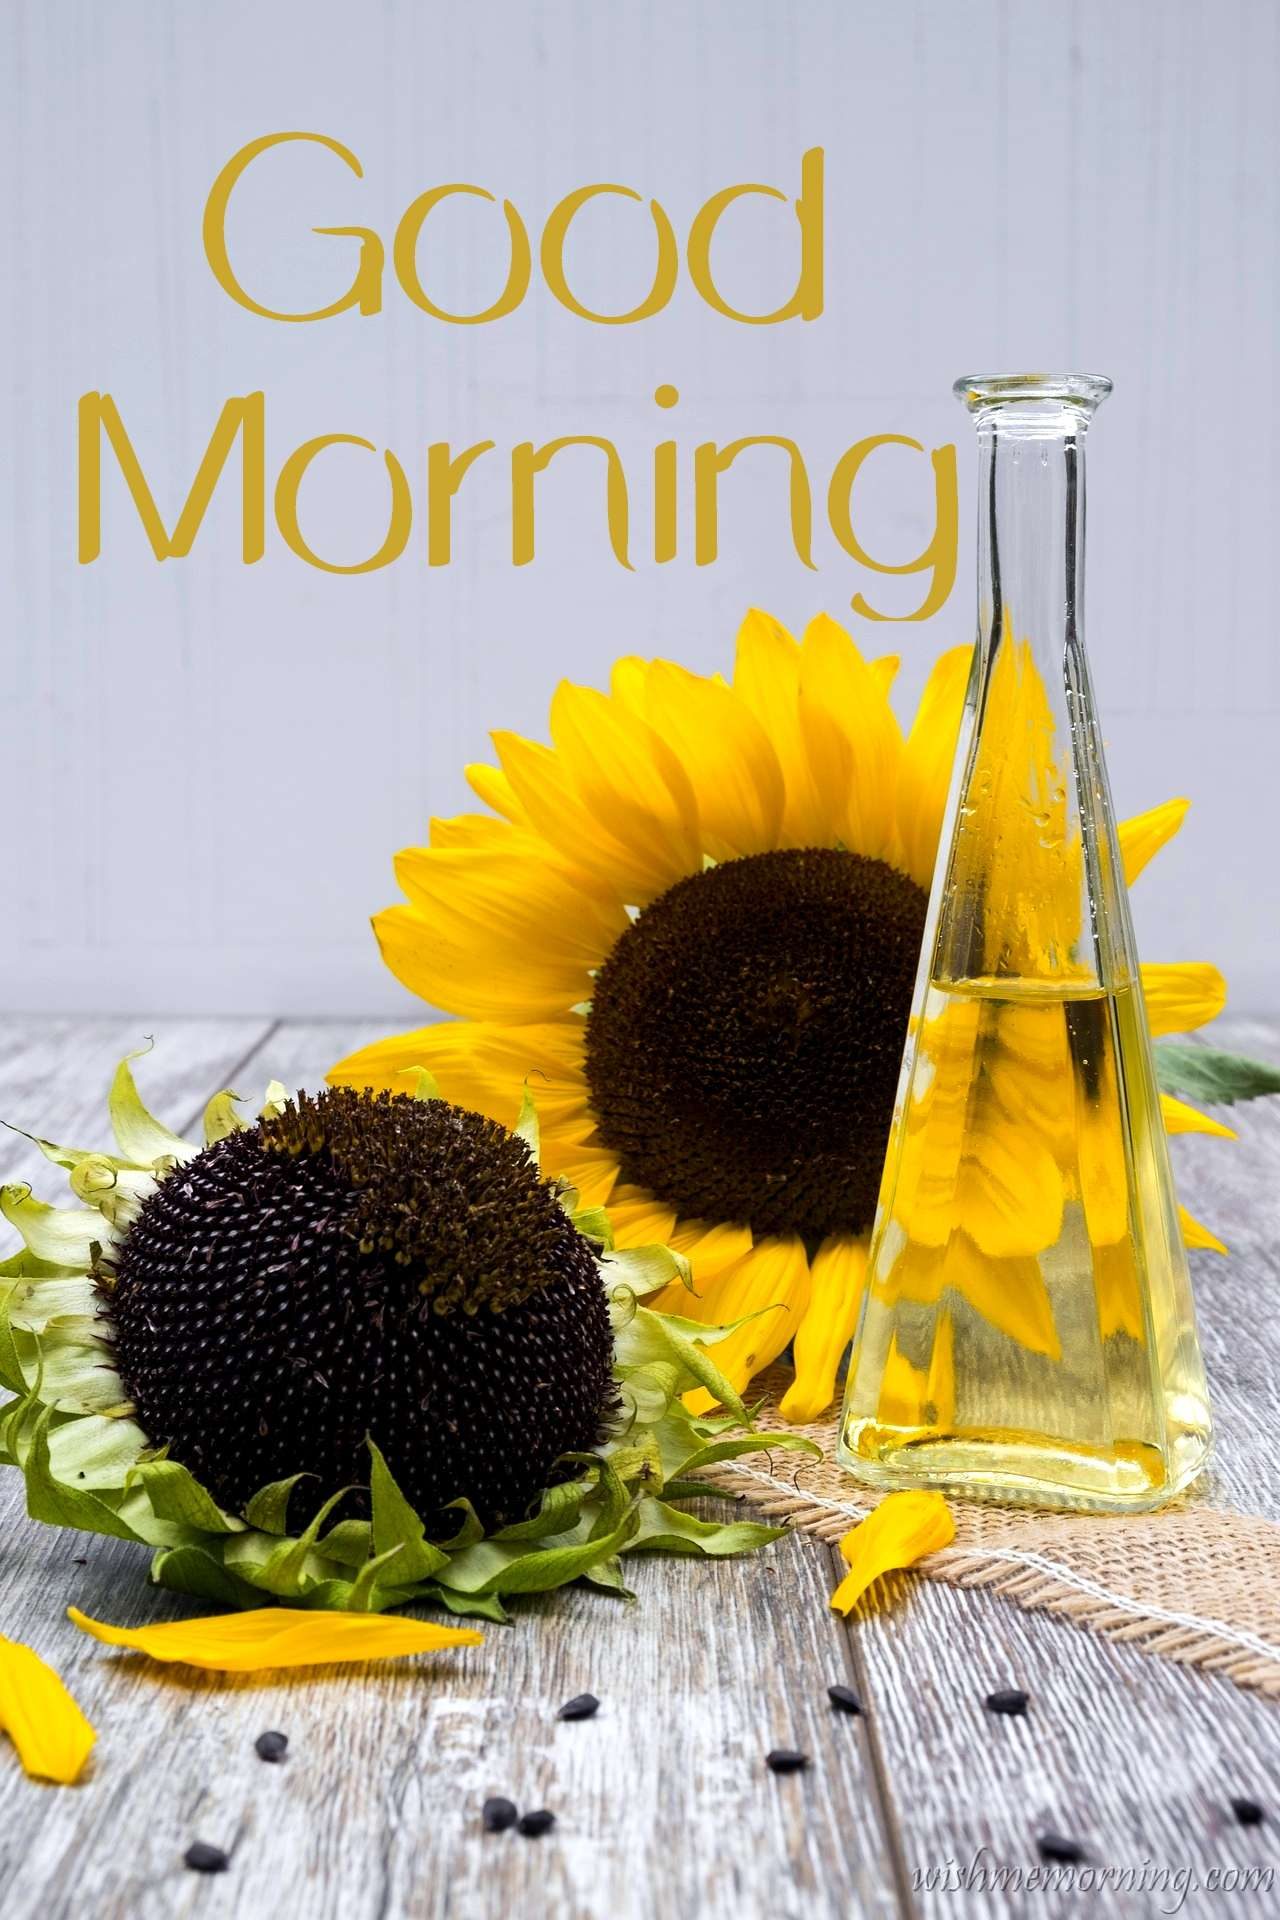 Two Big Yellow Sunflowers On Table Good Morning Image